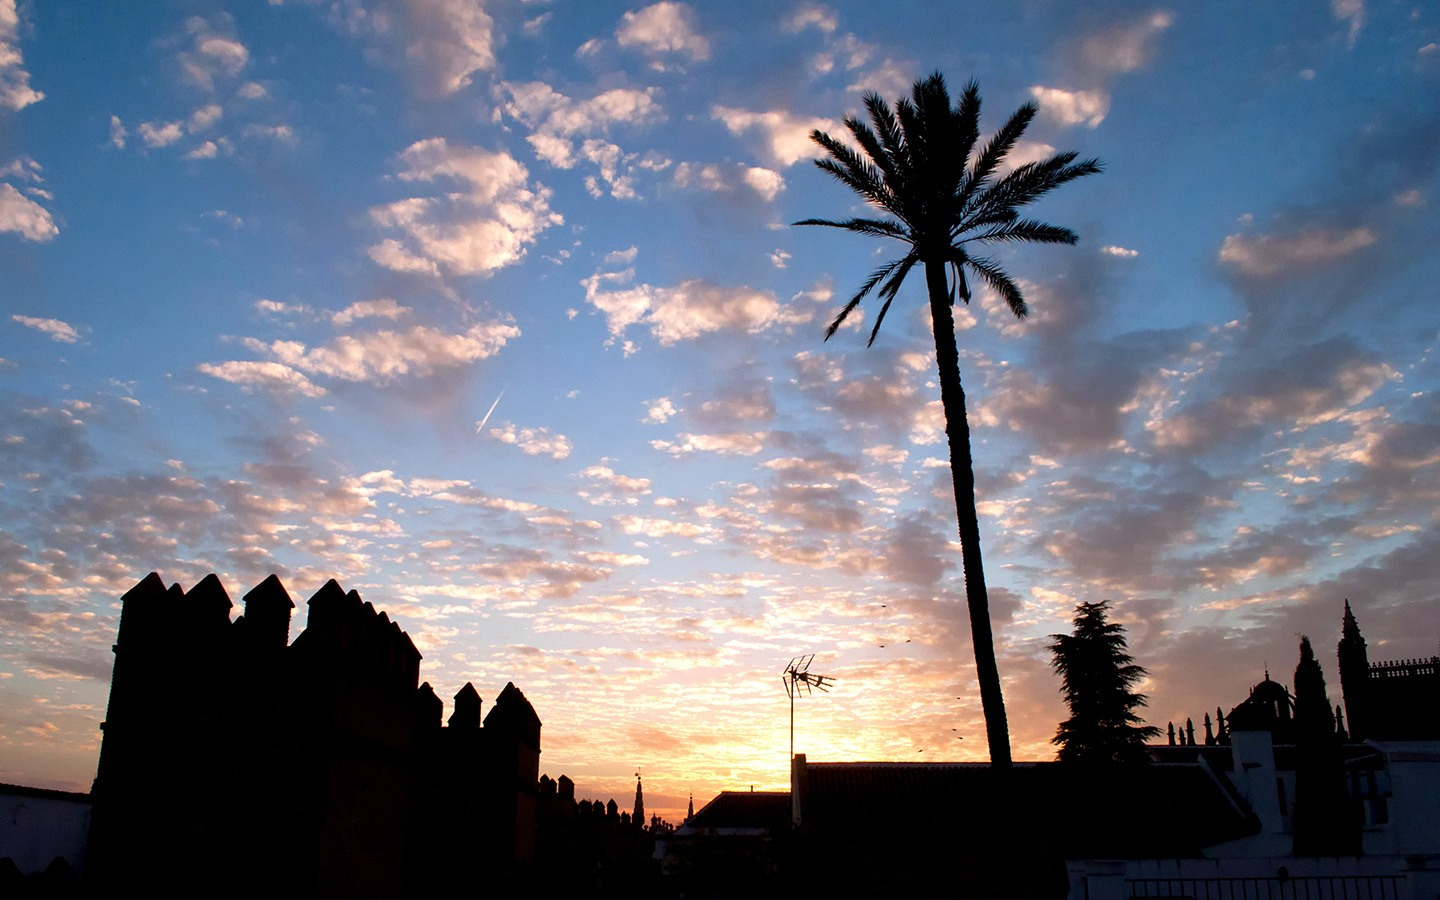 Sunset over the roof of the Alcazar